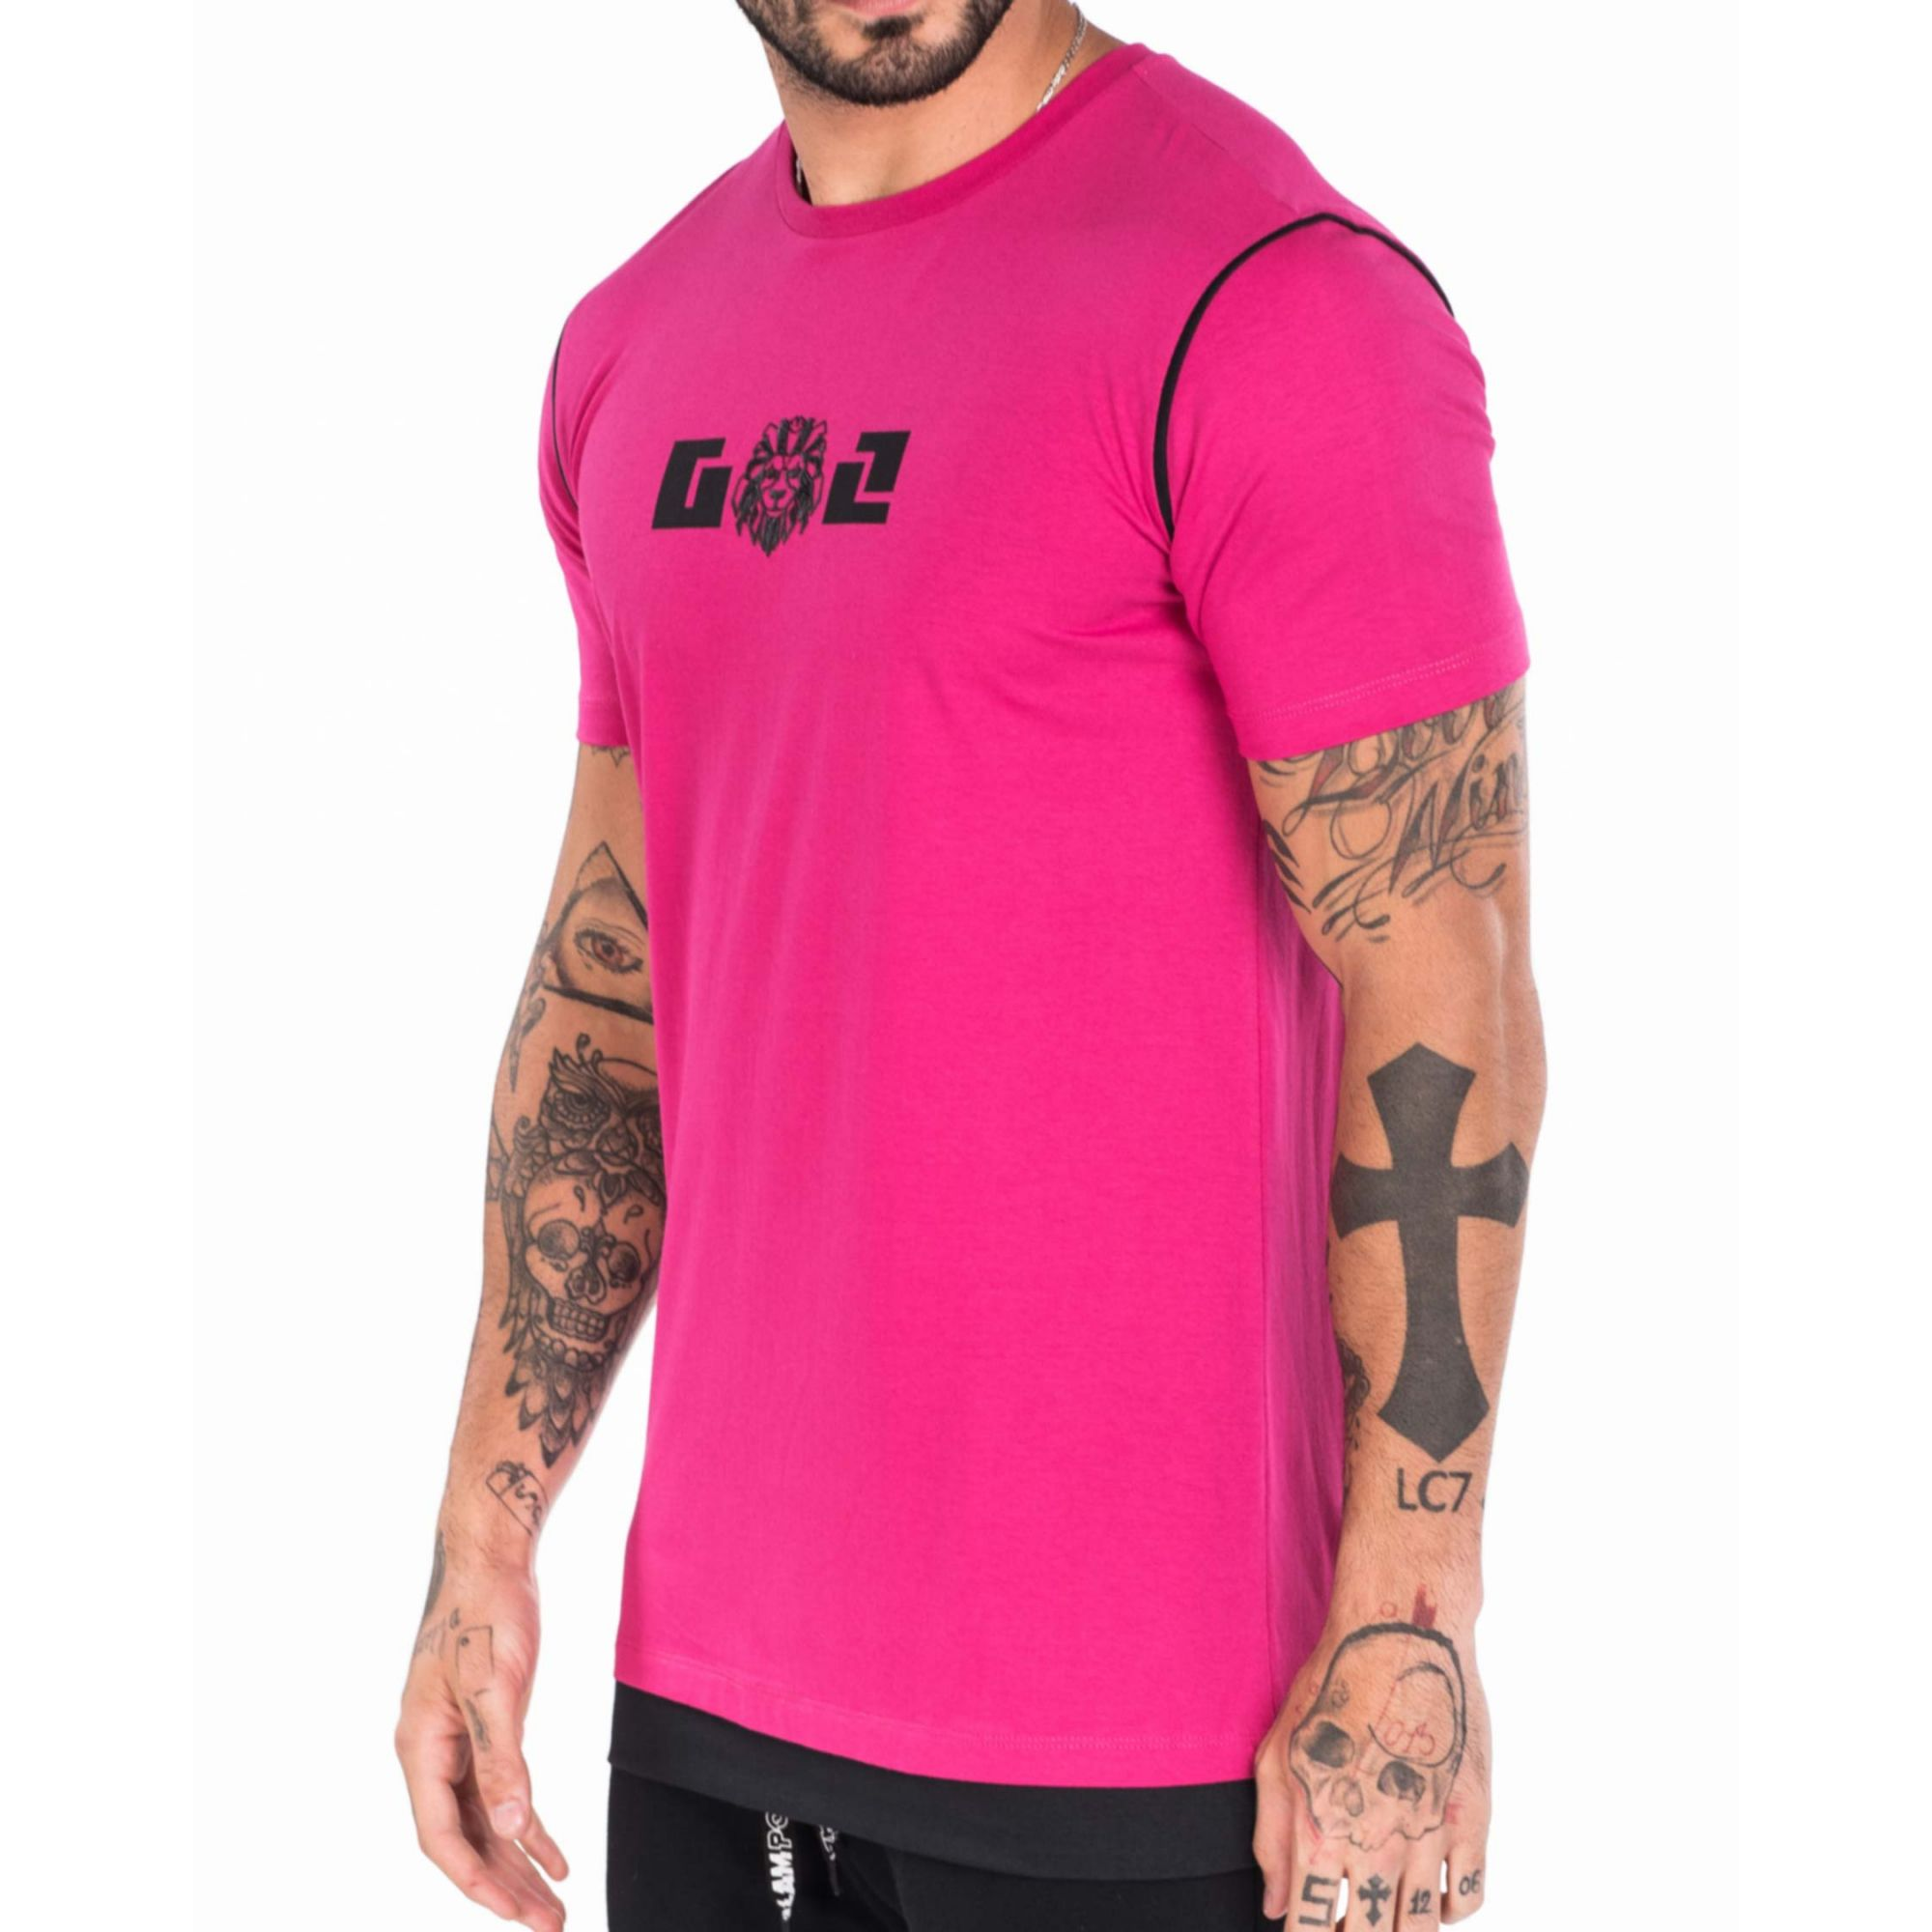 Camiseta Gol By Buh Pink